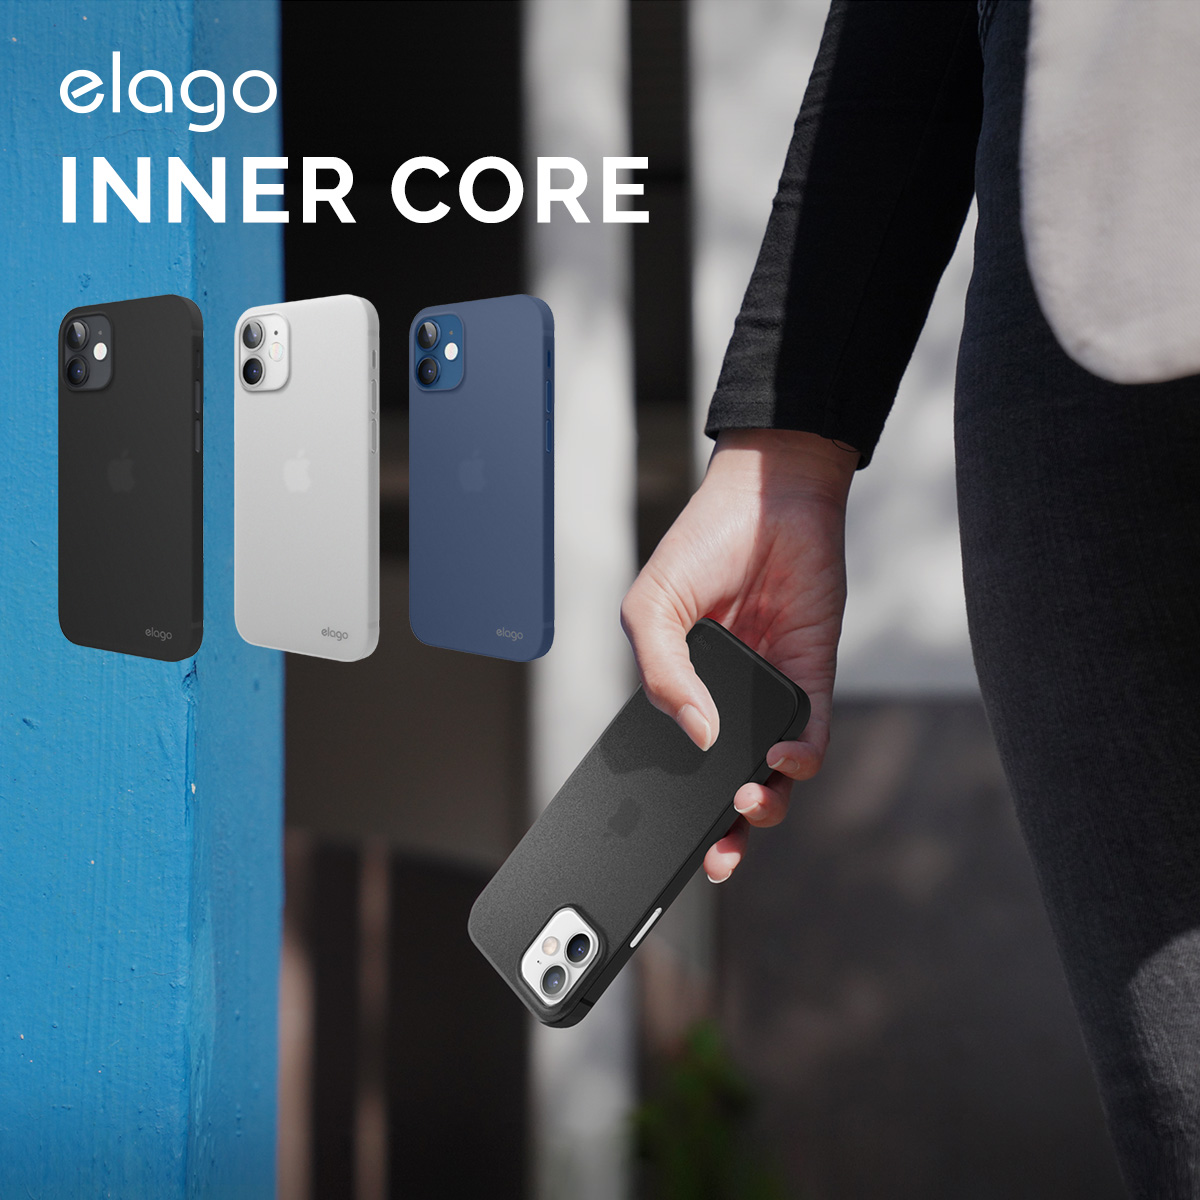 elago INNER CORE 2018 for iPhone12 mini